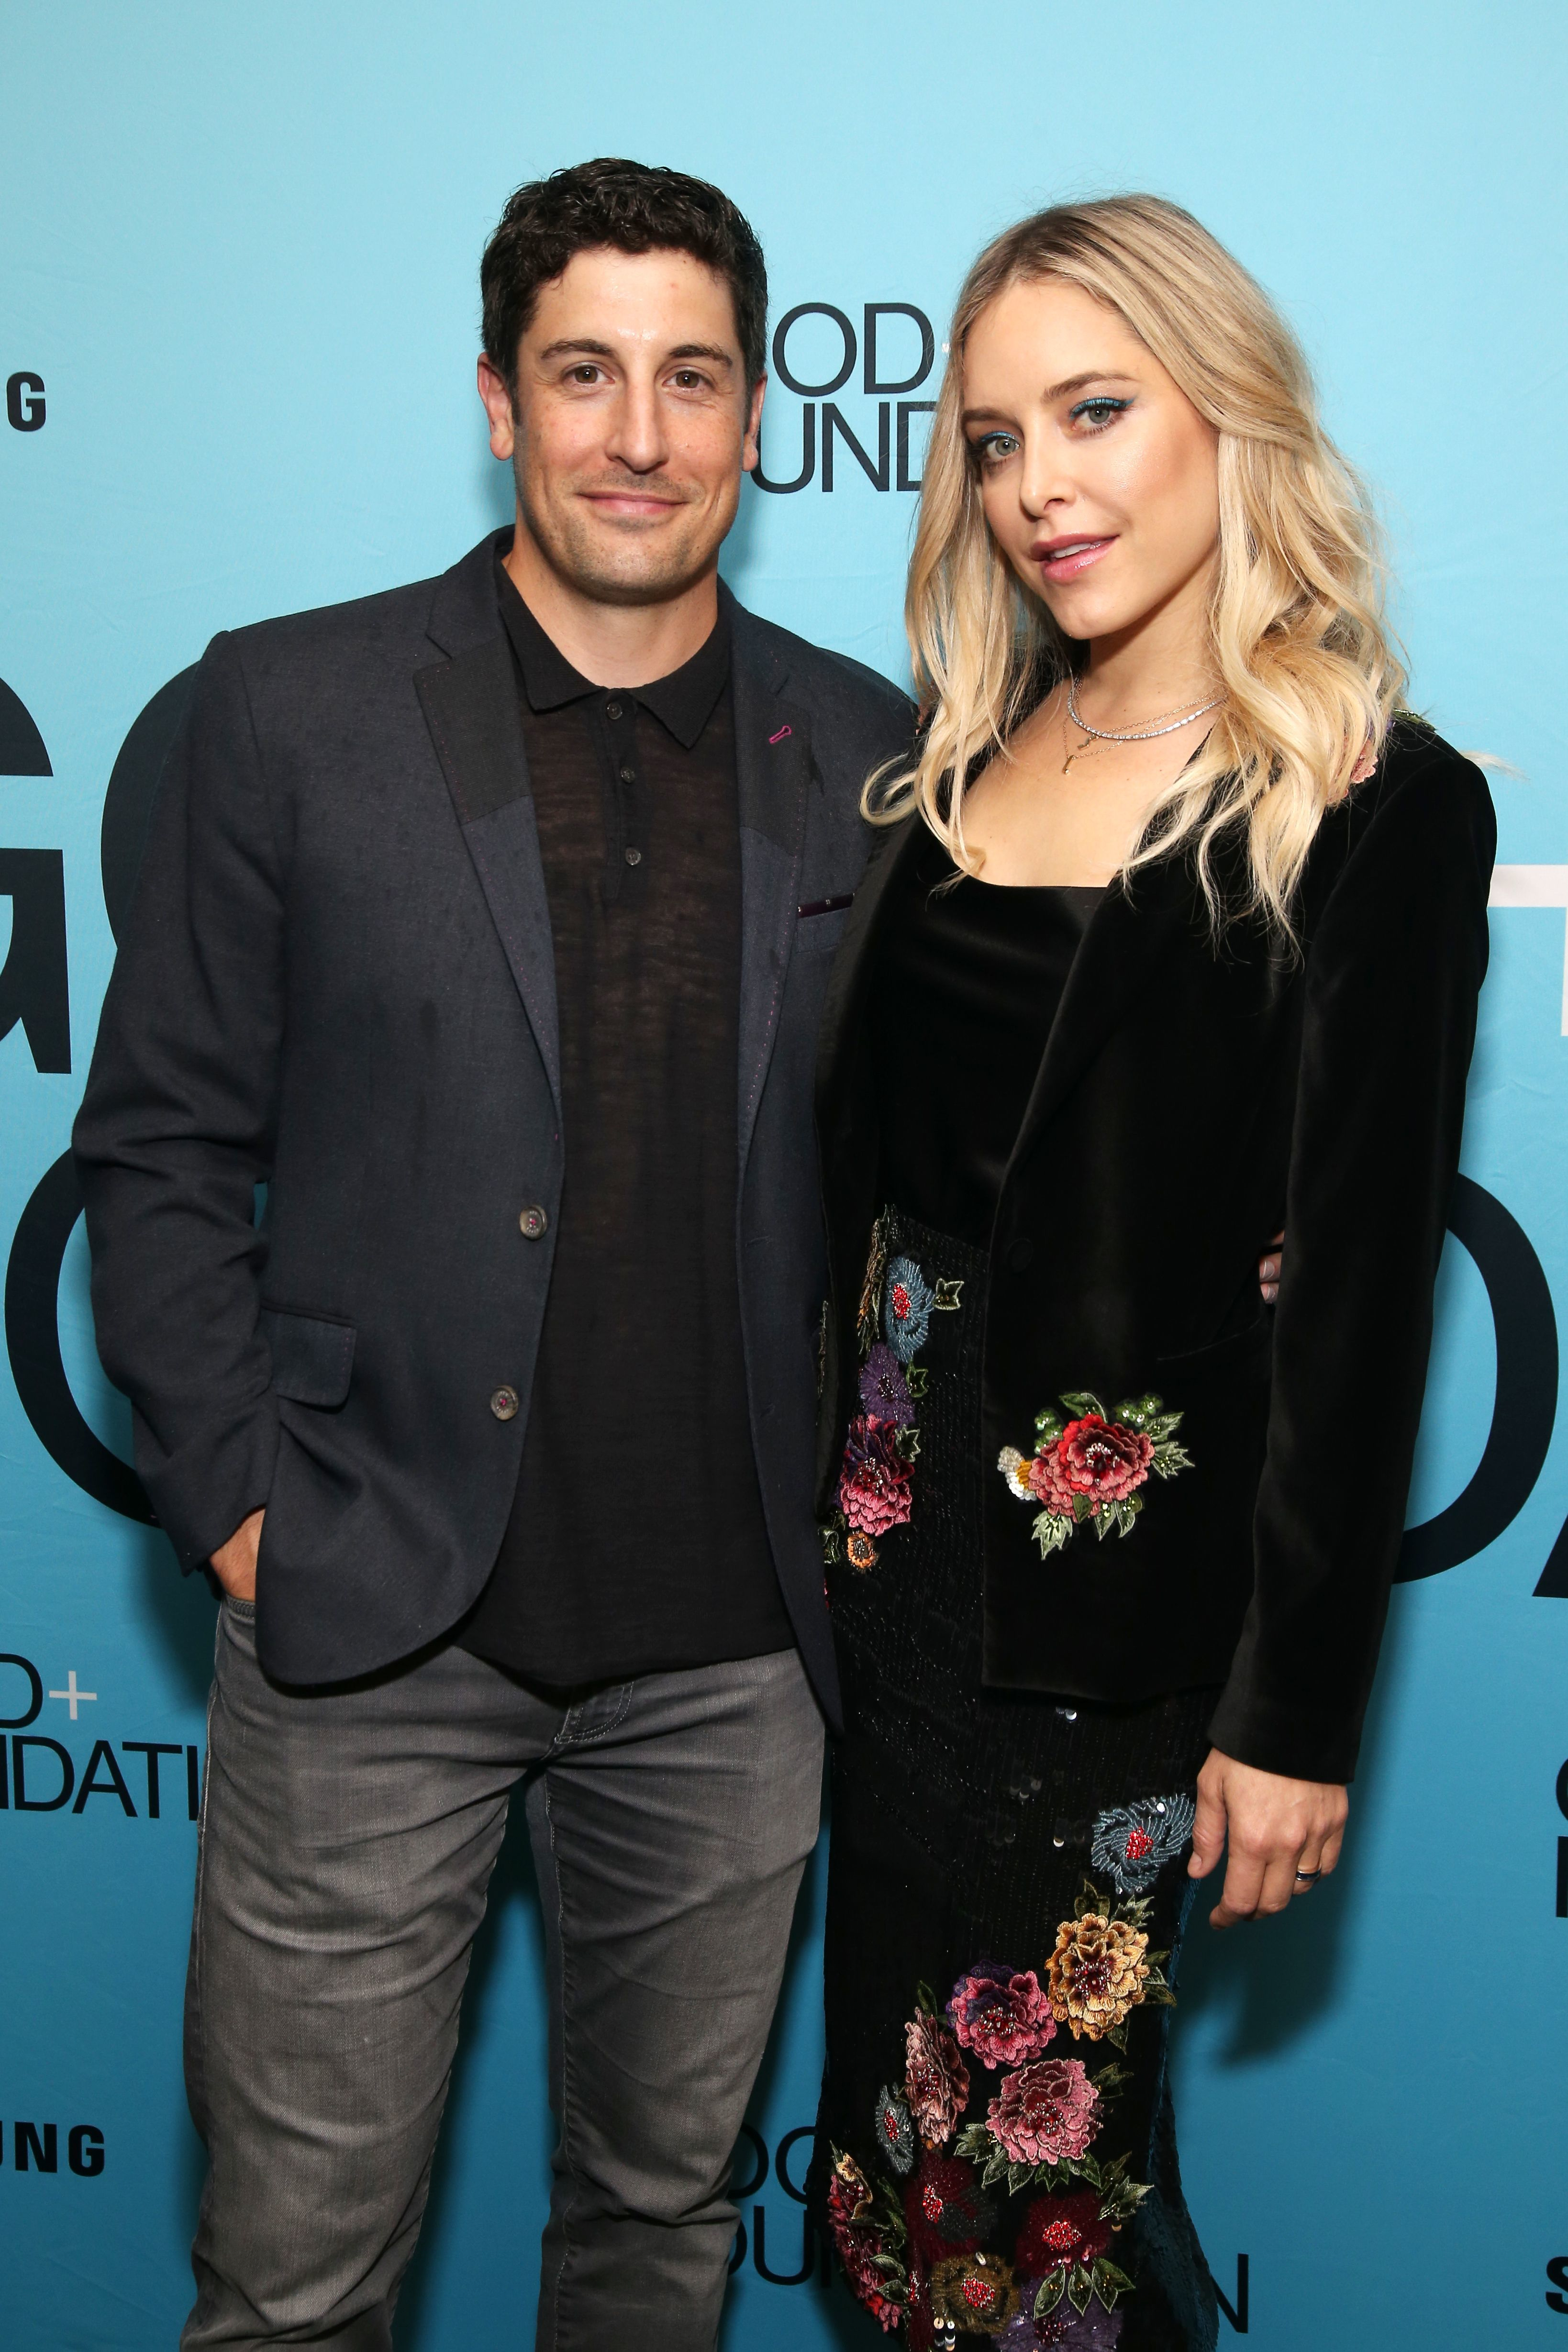 Jason Biggs and Jenny Mollen attend the Good + Foundation Benefit: An Evening of Comedy and Music in New York City on Sept. 12, 2018.